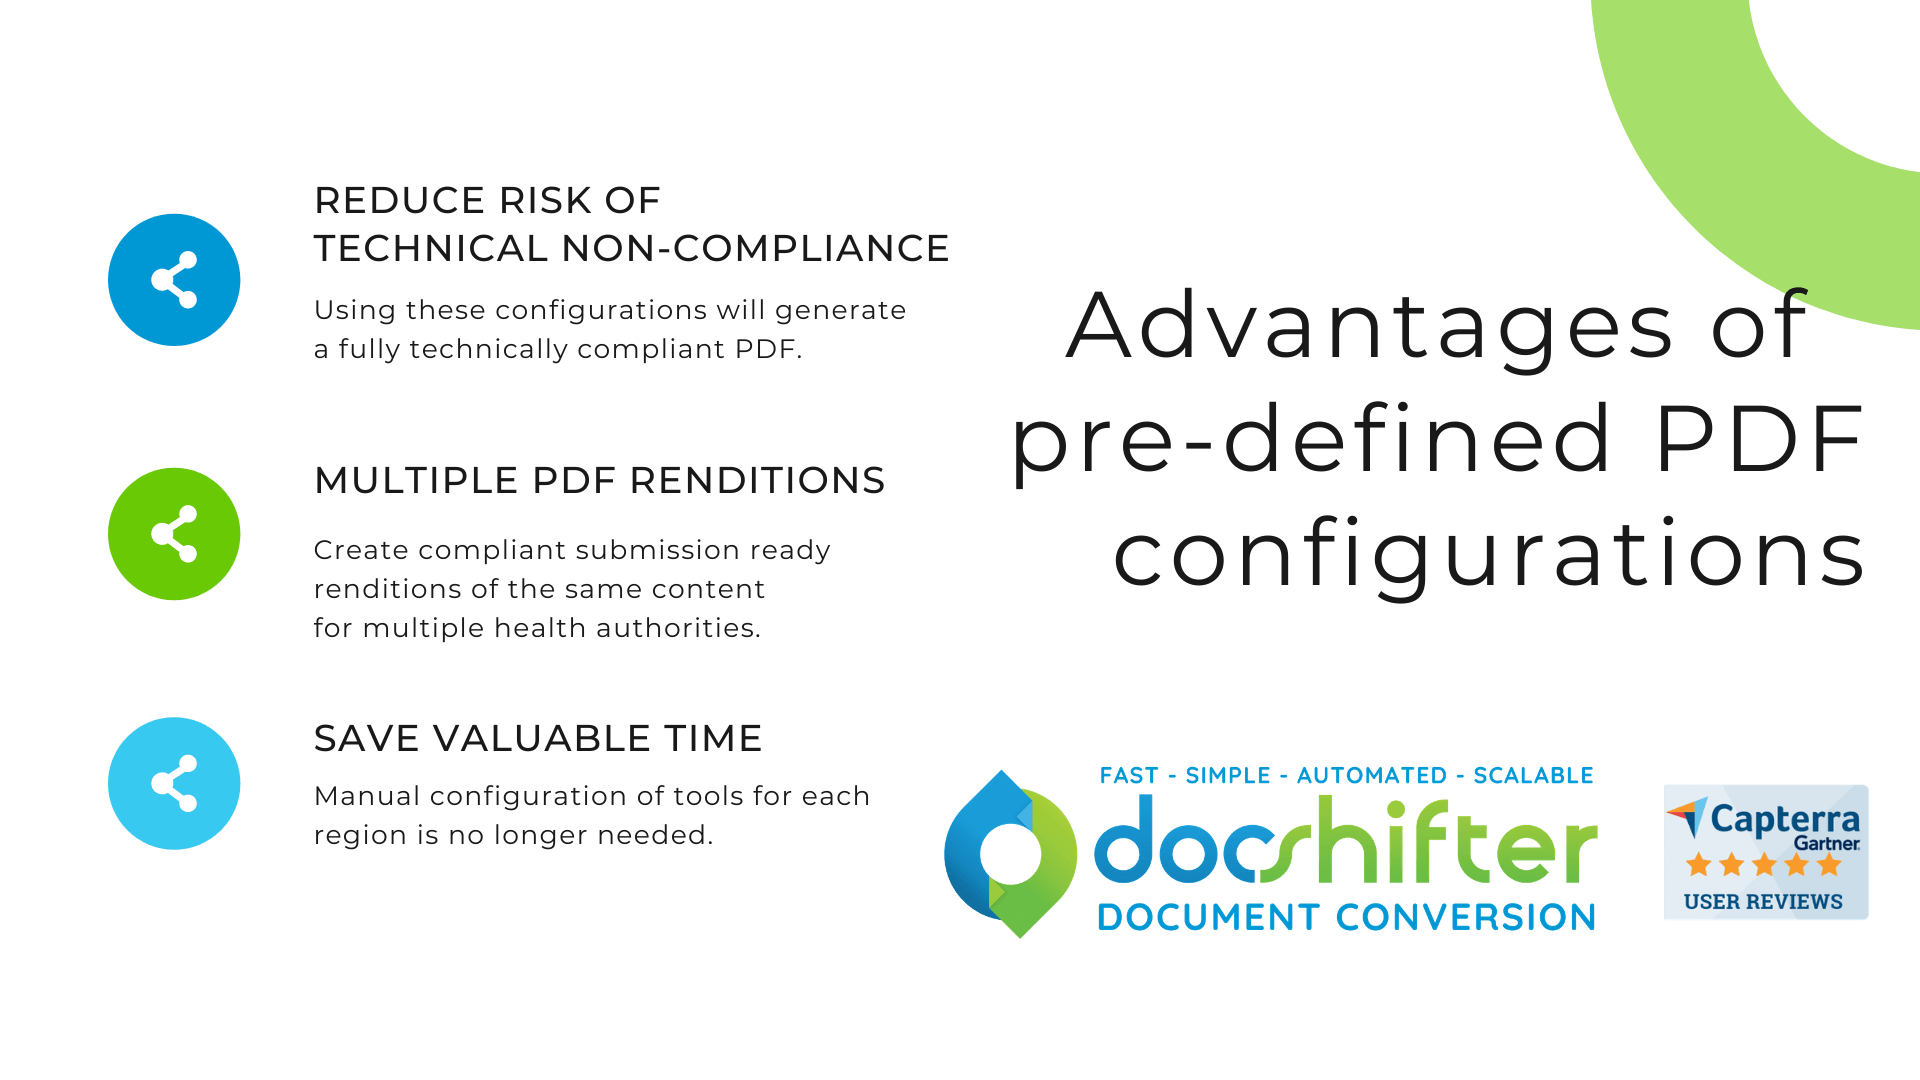 DocShifter's compliant PDF configurations reduce risk of technical non compliance, and allow multiple PDF renditions for multiple health authorities.